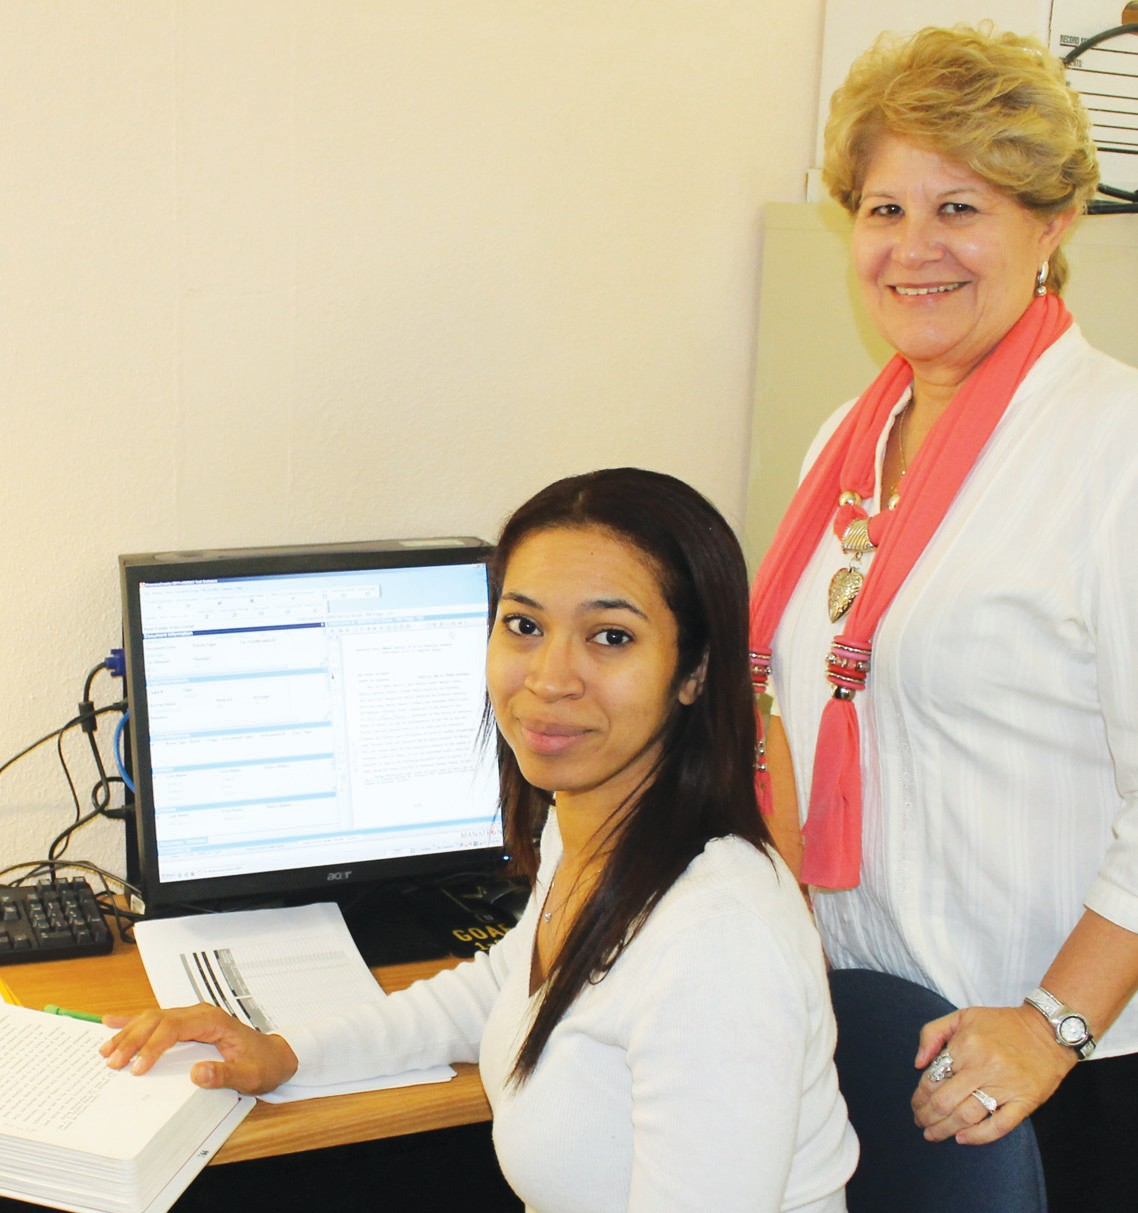 Carla Ozuna, third-year law student at St. Mary's University School of Law in San Antonio, going through the indexing and making sure the content is correct in records at the Atascosa County Courthouse files in the Countty Clerk's office. Looking on is Atascosa County Clerk Diane Gonzales.